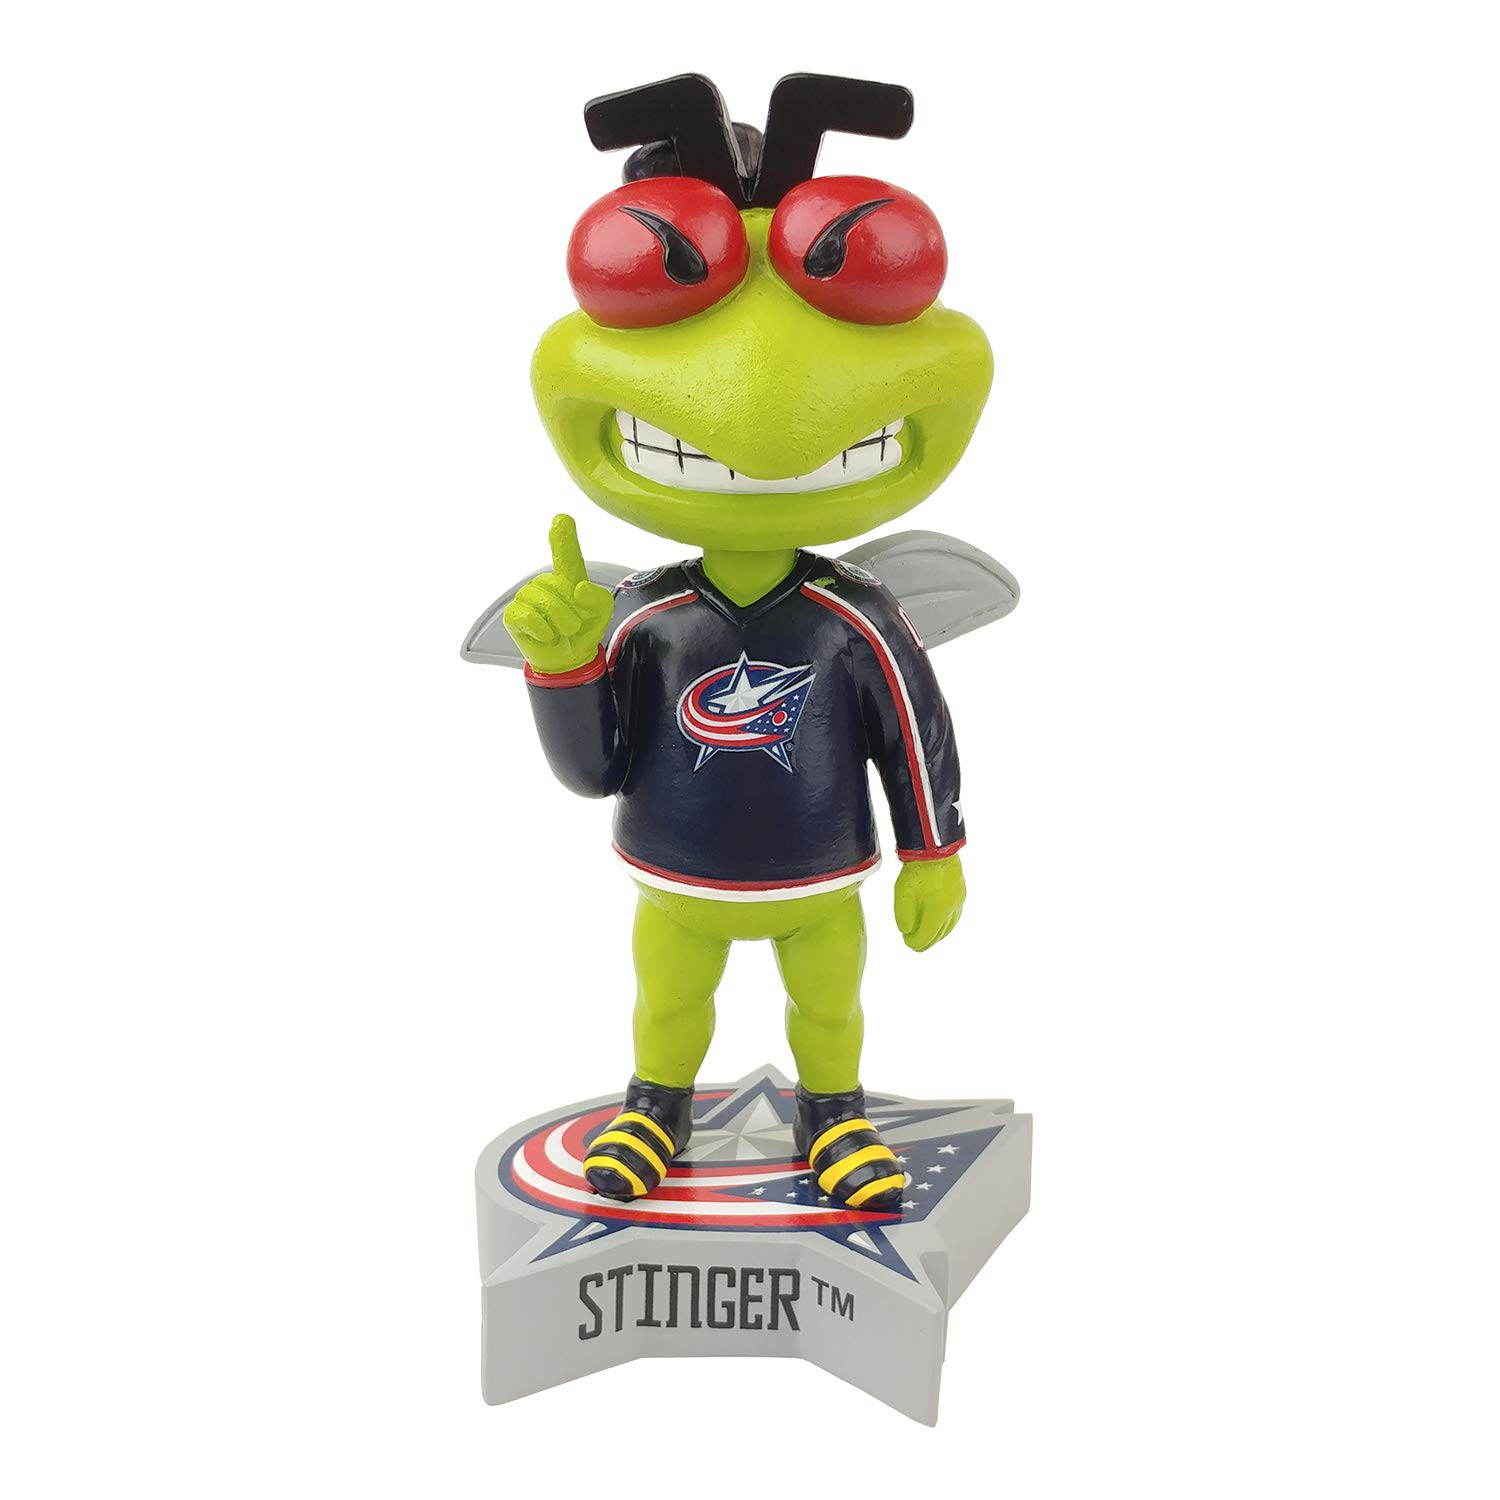 Limited Edition /& Numbered Columbus Blue Jackets Stinger Mascot Bobblehead